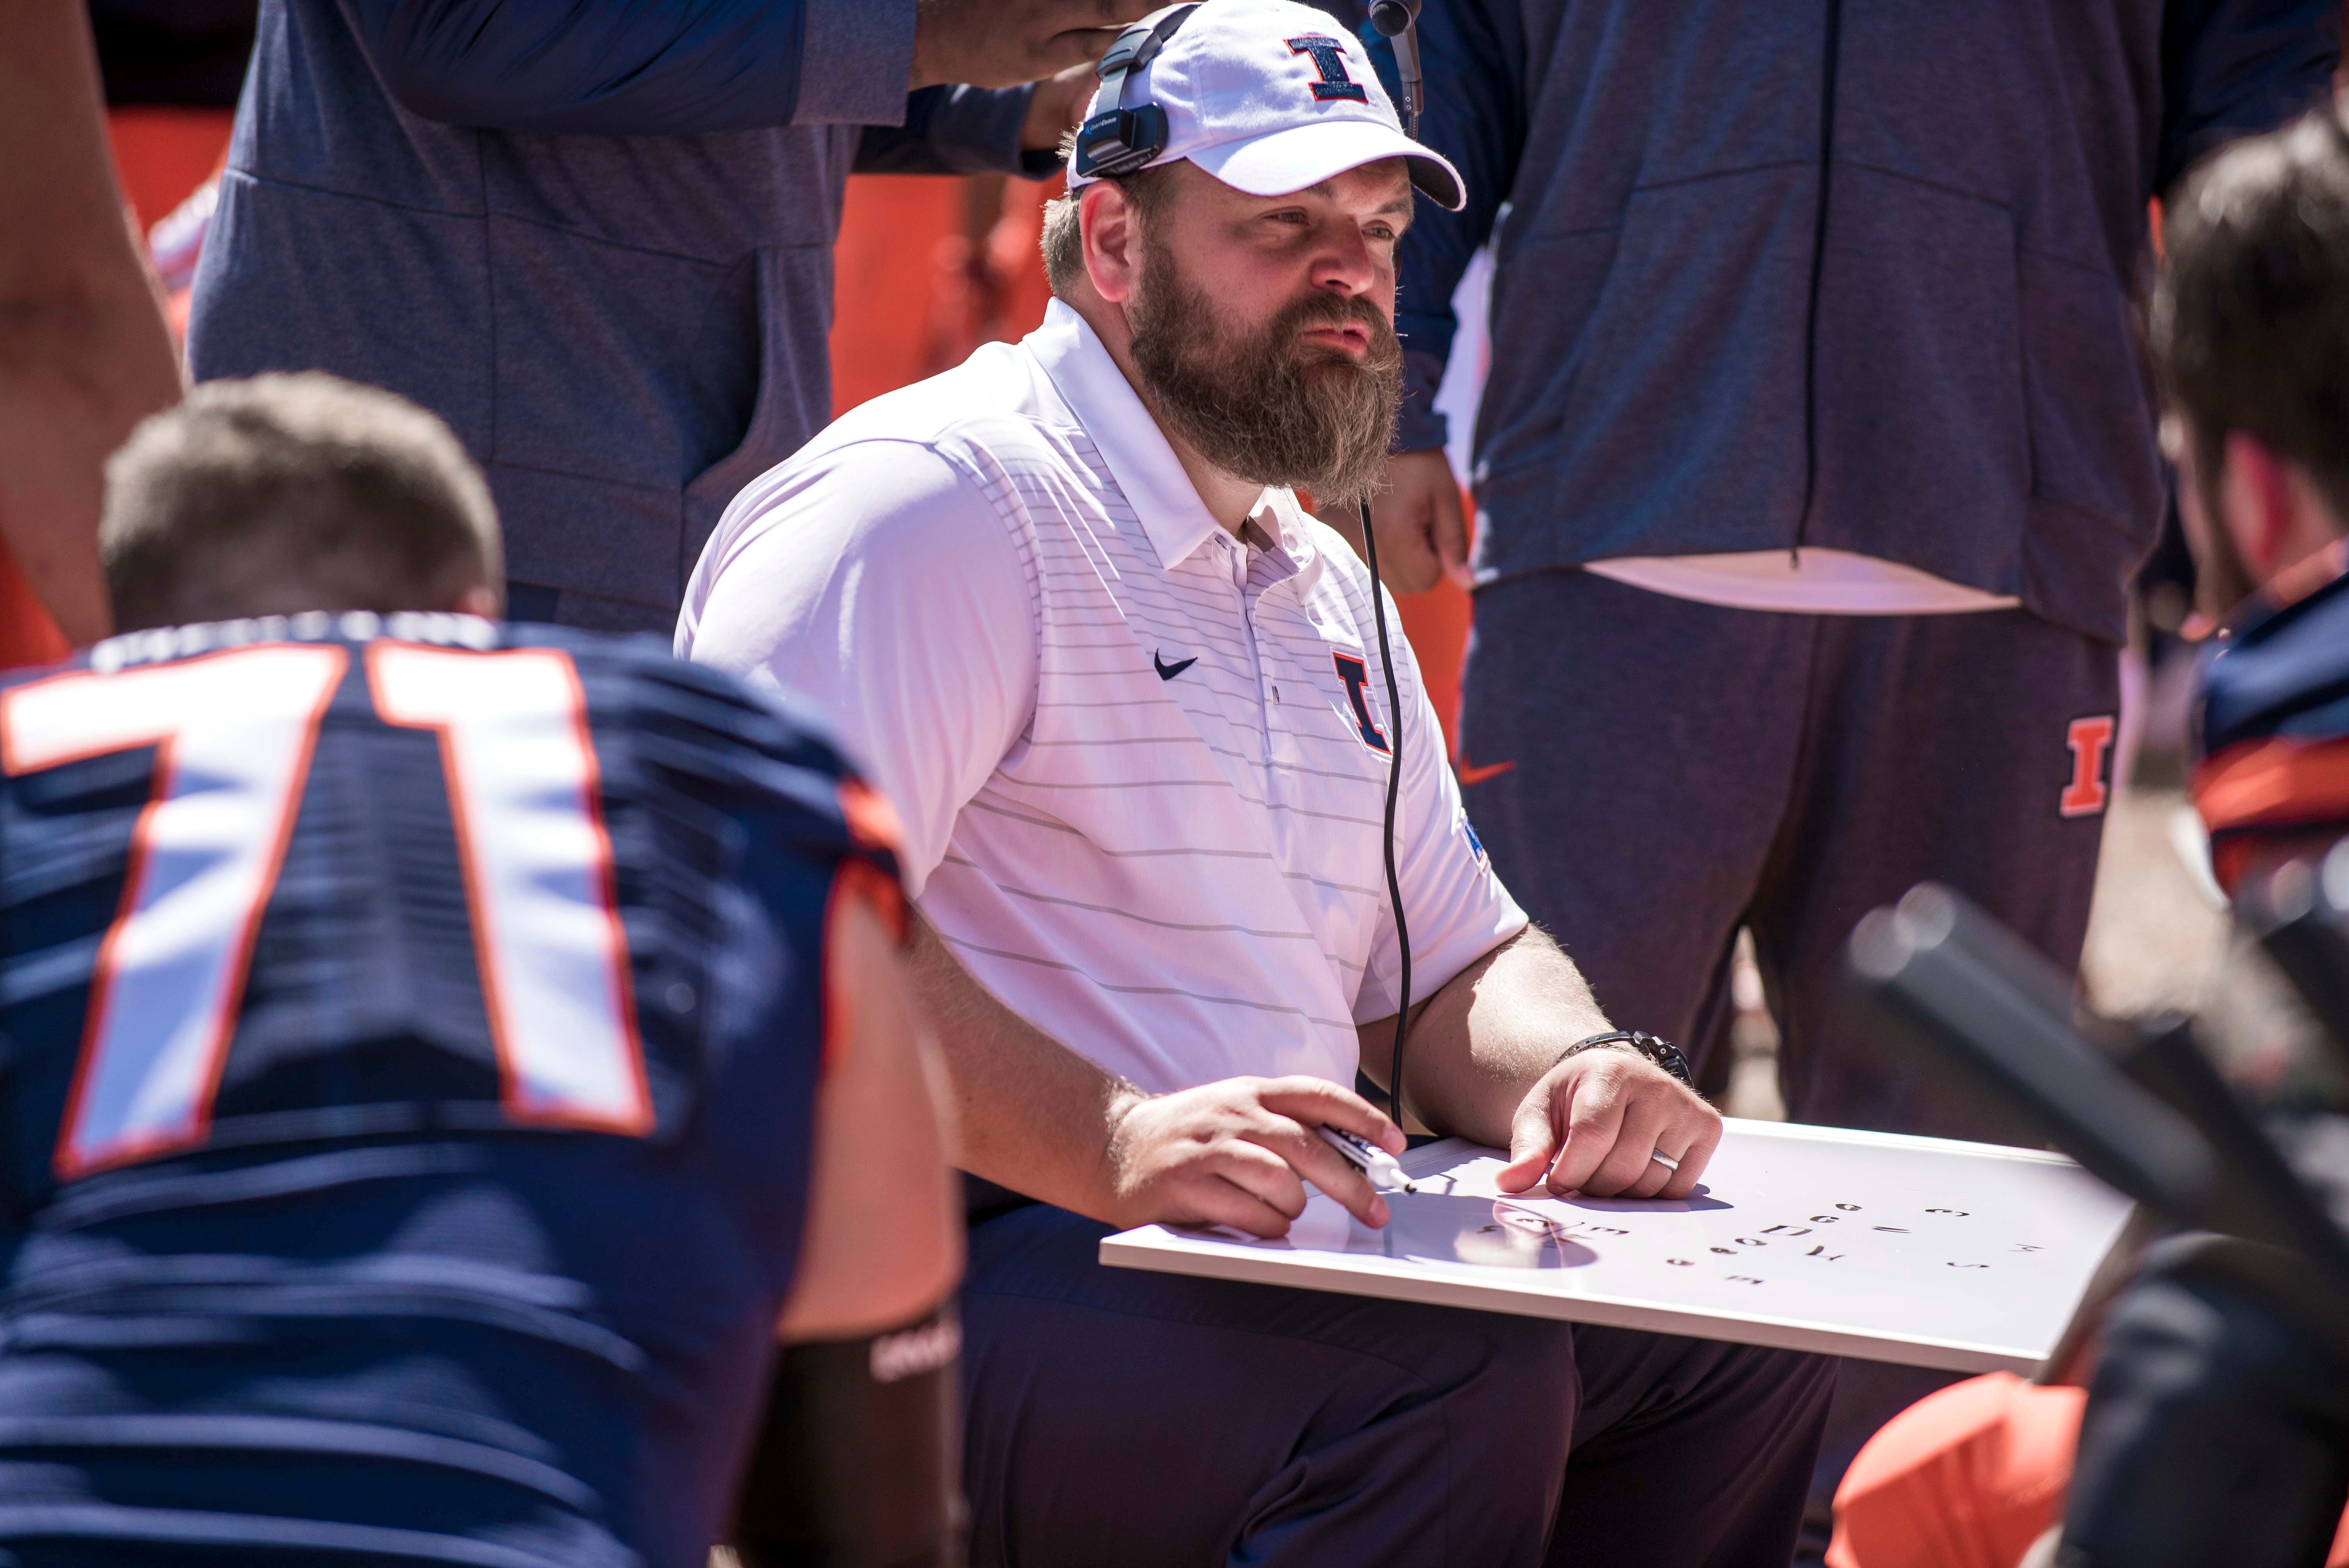 Dick Butkus' nephew joins Packers as assistant offensive line coach